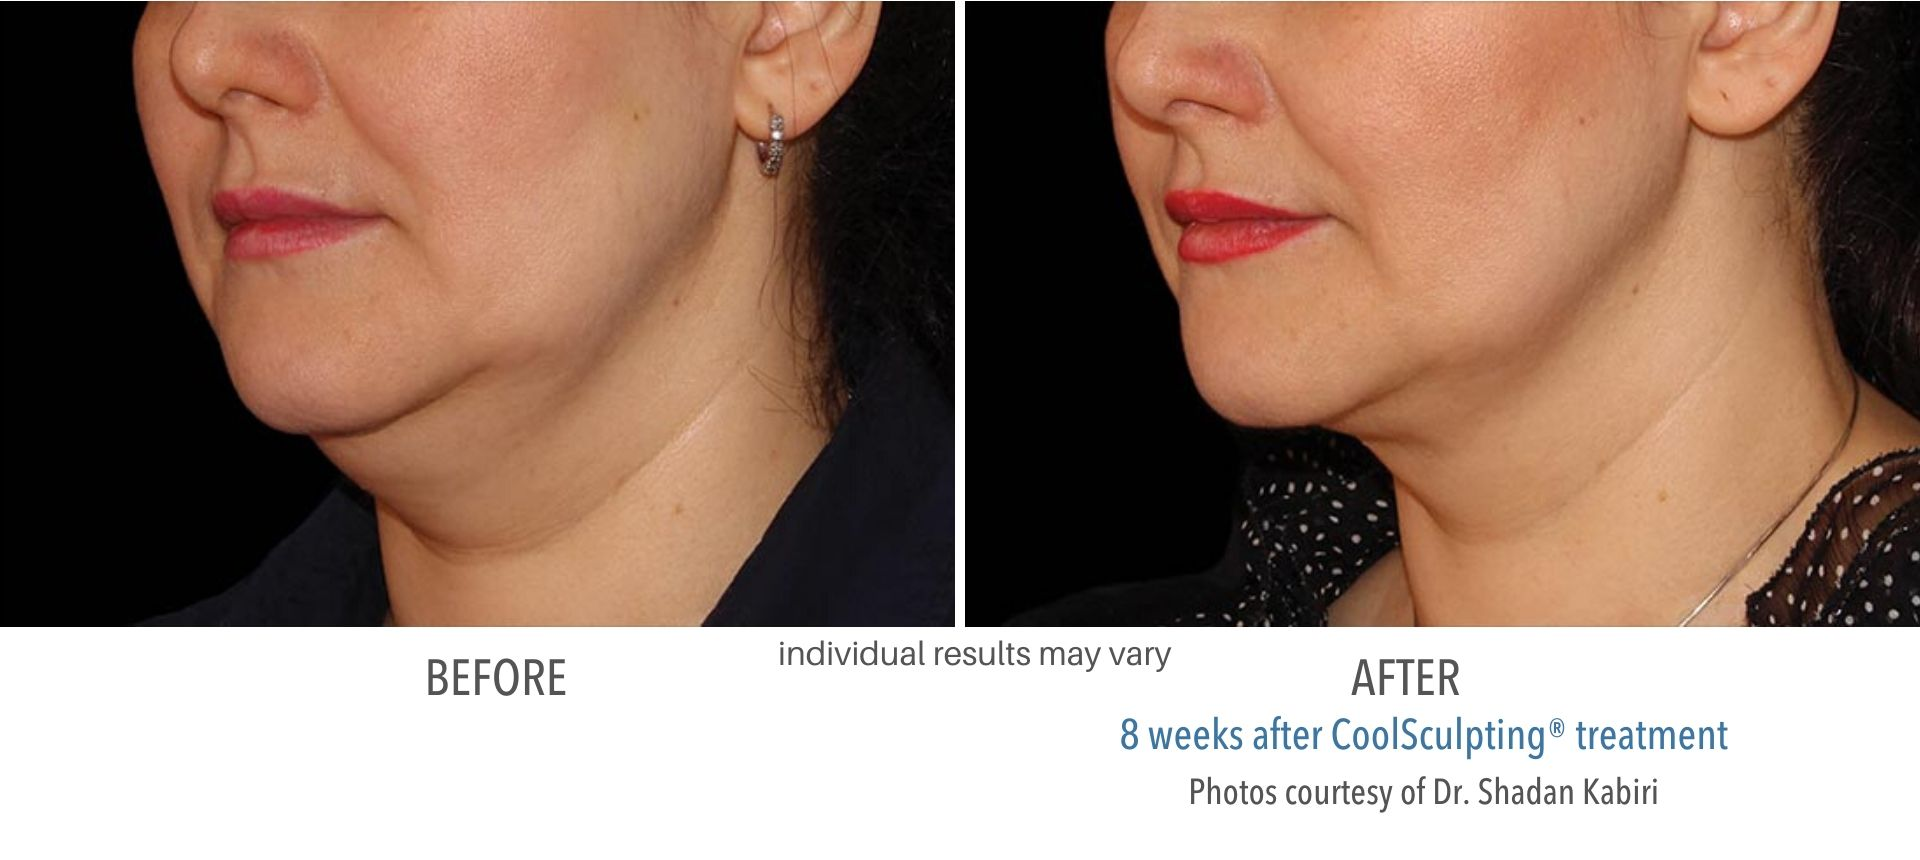 coolsculpting before and after double chin Sudbury, MA